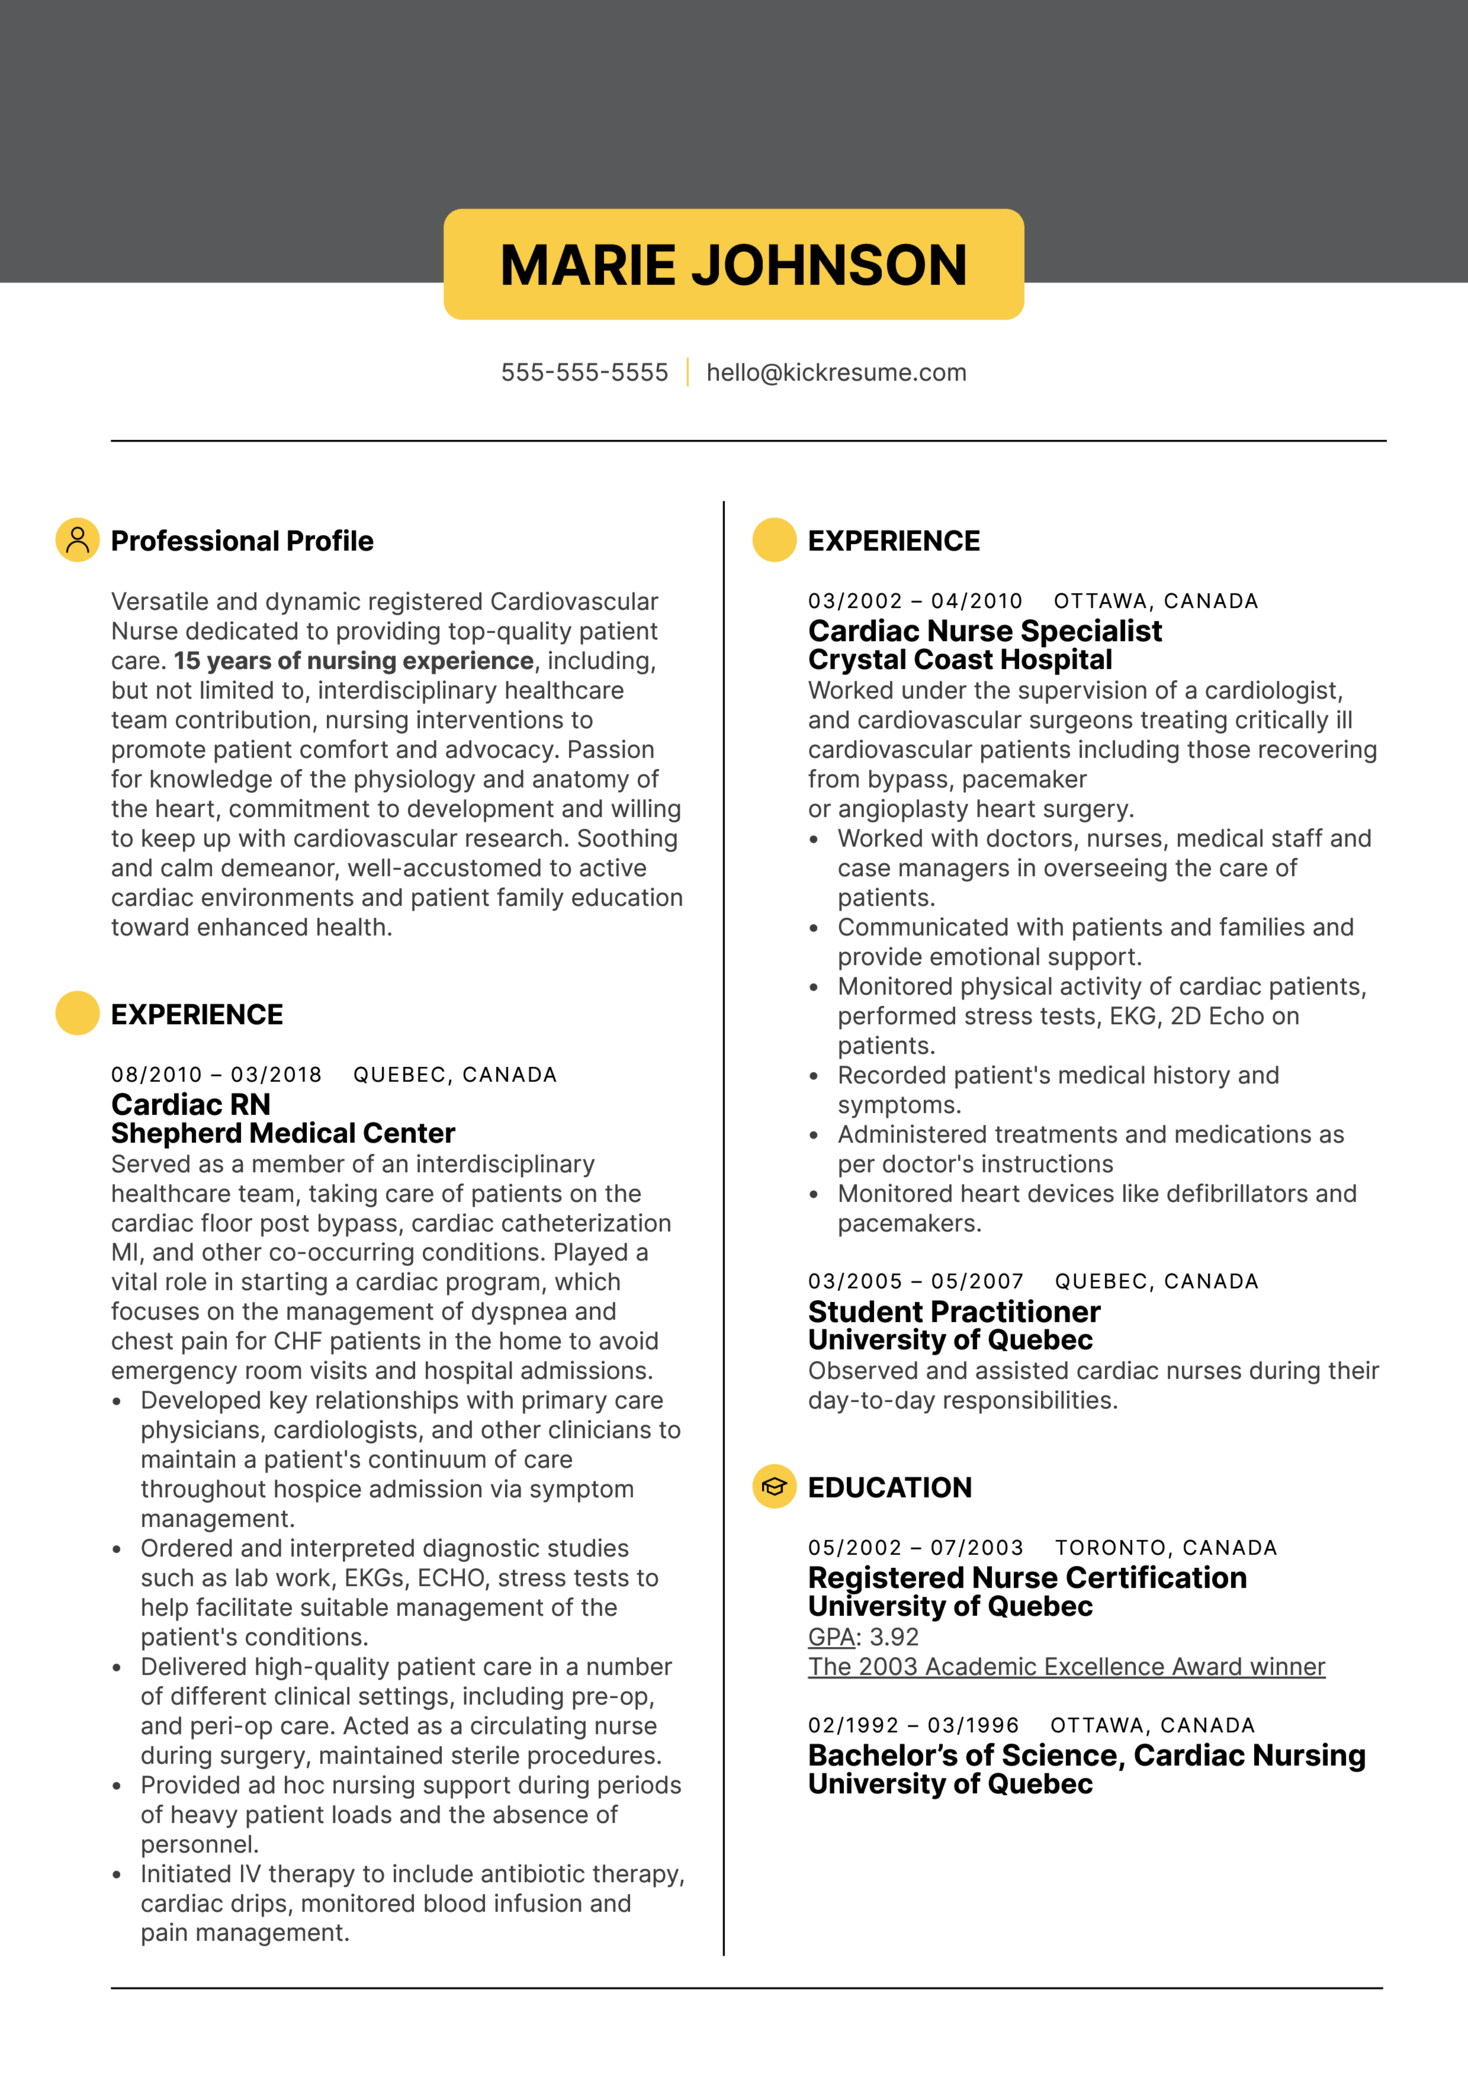 Cardiac Nurse Resume Sample (Part 1)